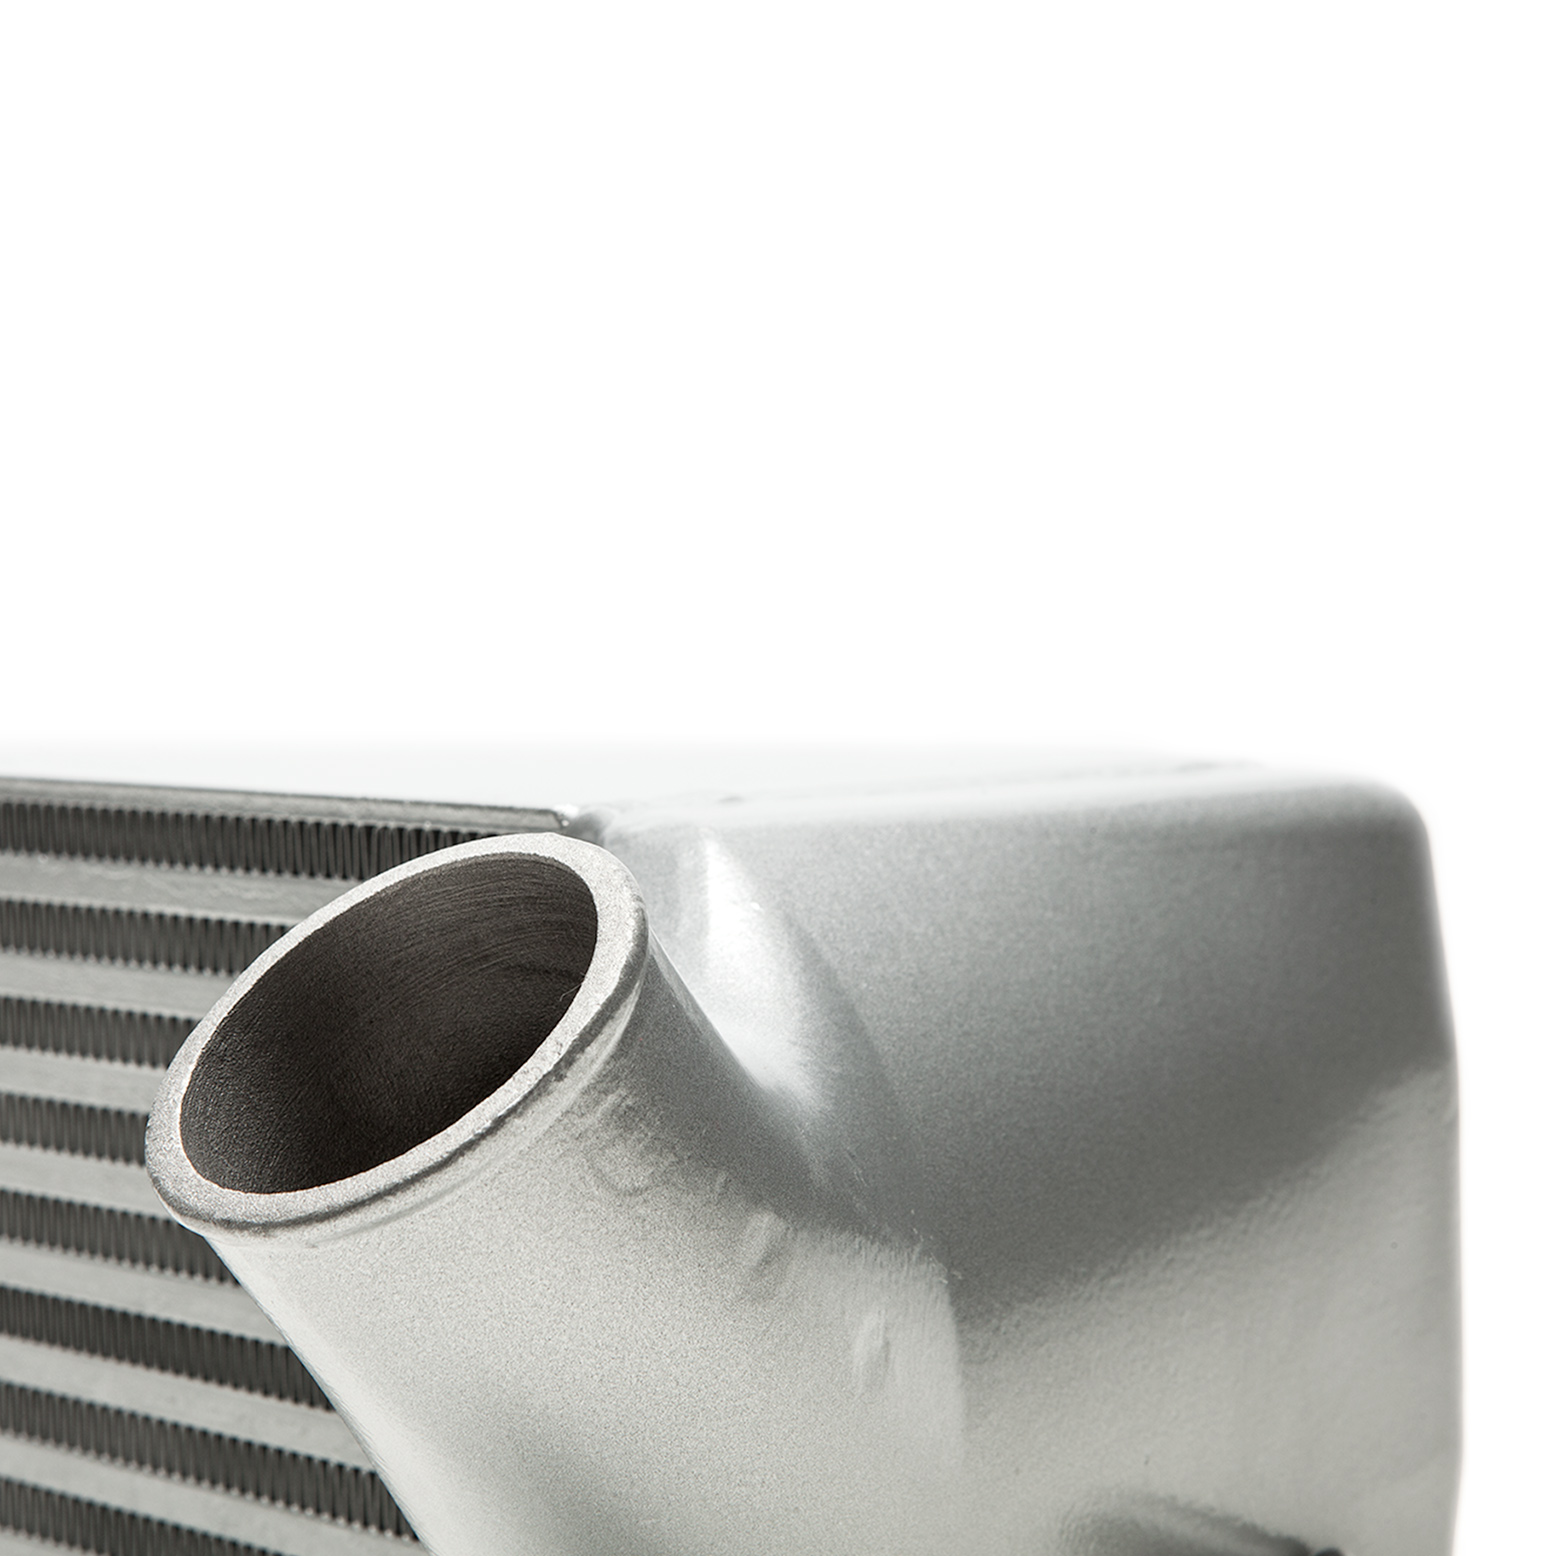 Cobb Front Mount Intercooler for 2015 Ford Mustang EcoBoost [S550] 2.3L Turbo 7M1500